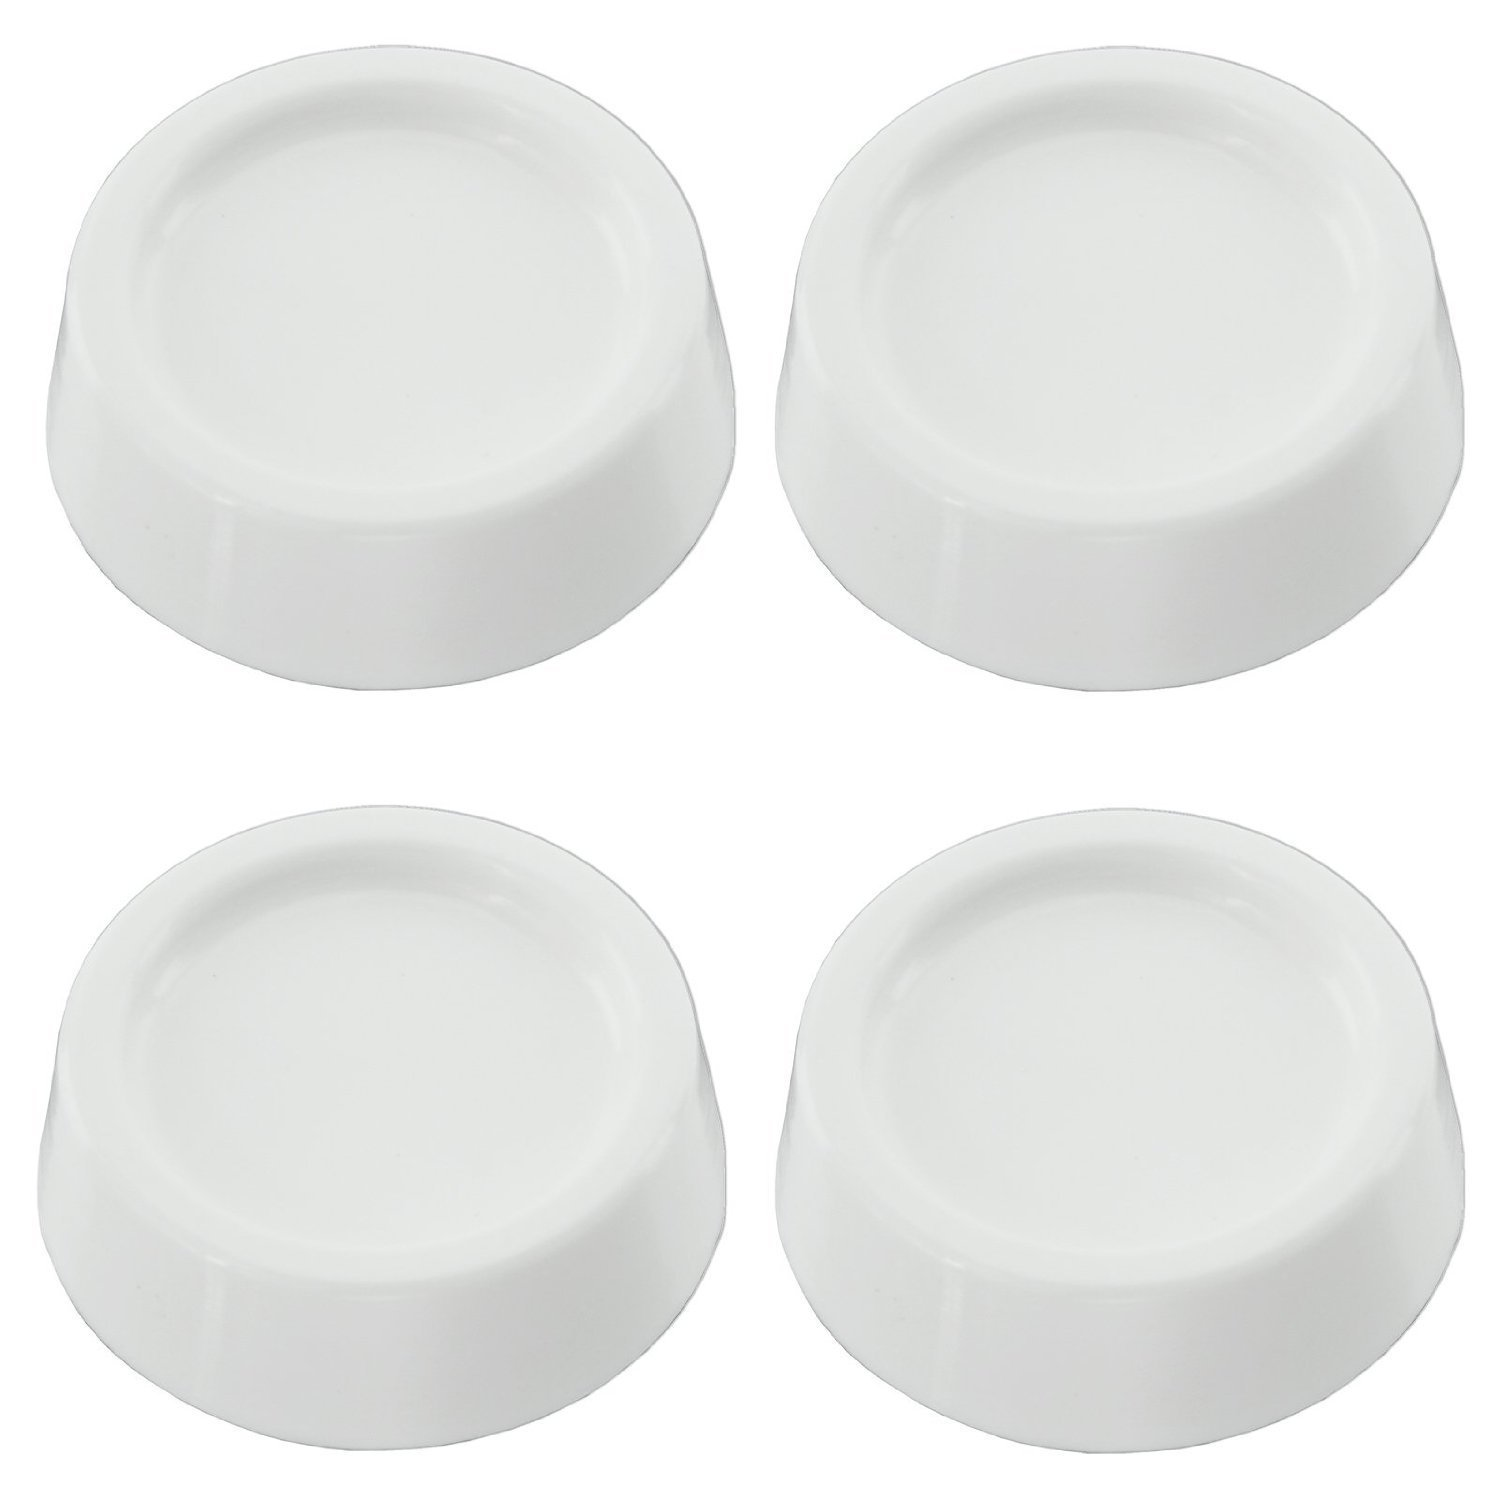 Pack of 4 SPARES2GO Anti Vibration Low Noise Rubber Feet Pads for MIELE Tumble Dryer//Washing Machine